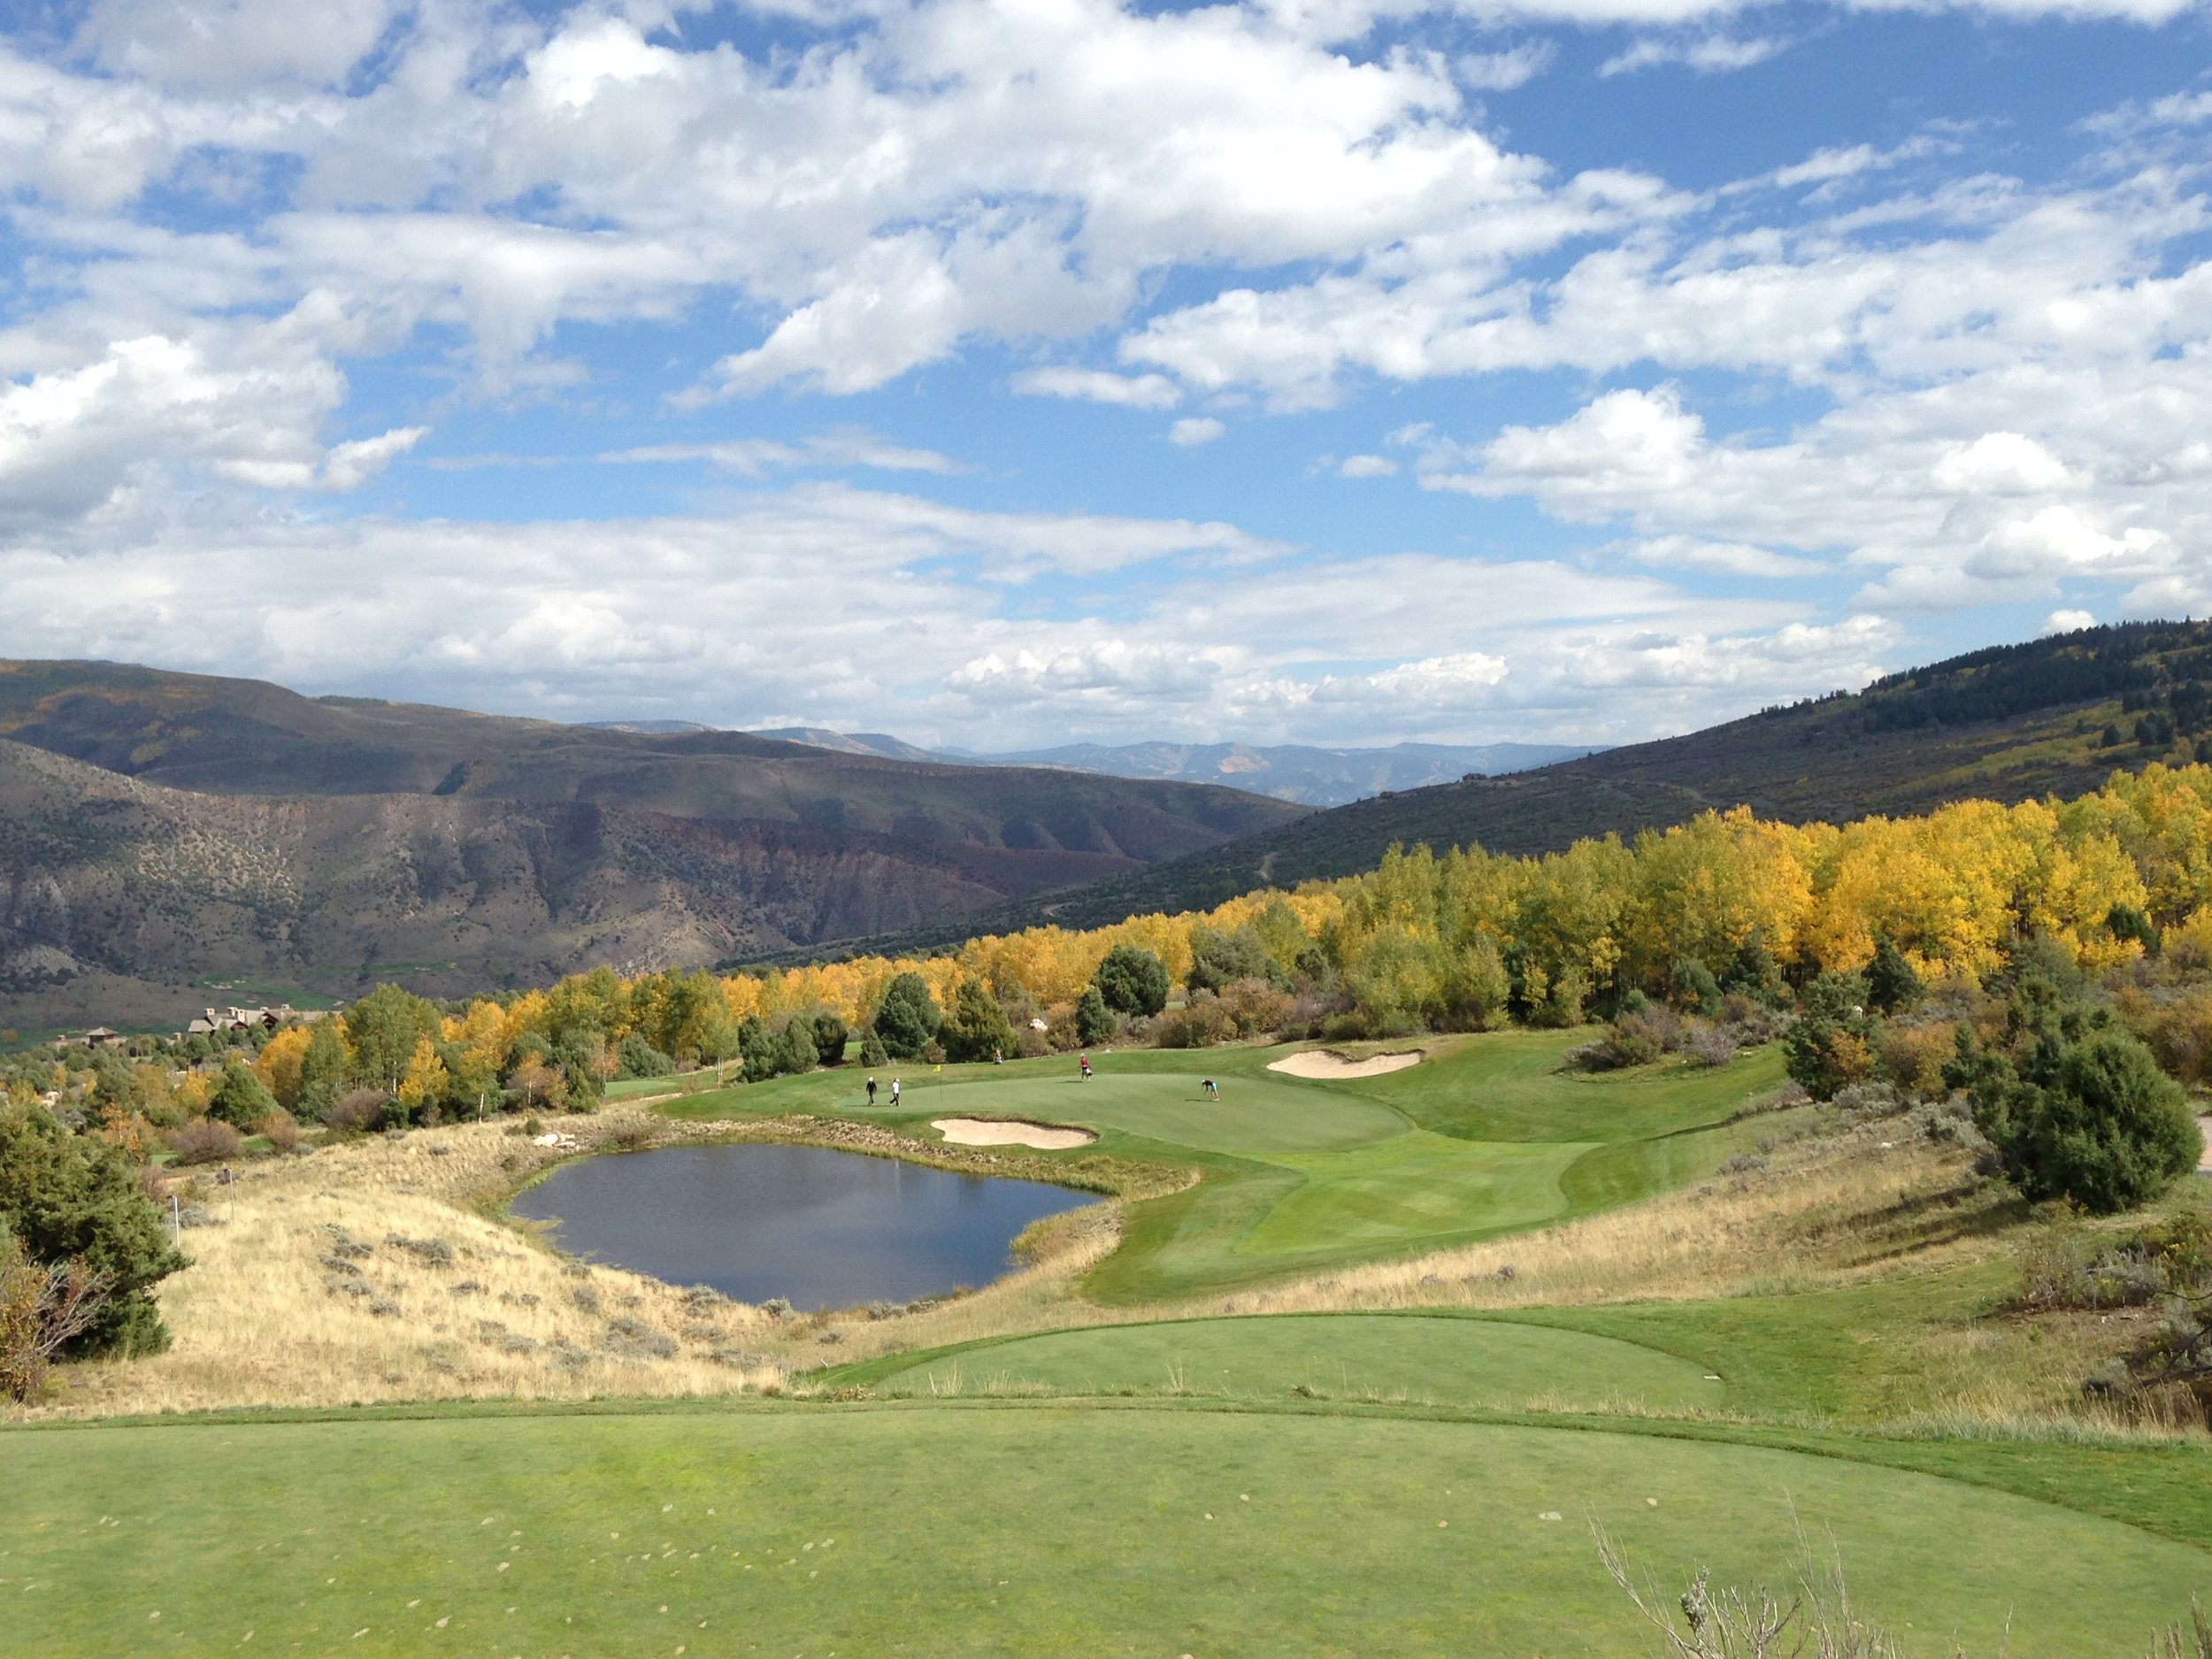 In the final round of the Golfweek Conference Challenge, the downhill par-3 17th was a big swing hole for Denver.